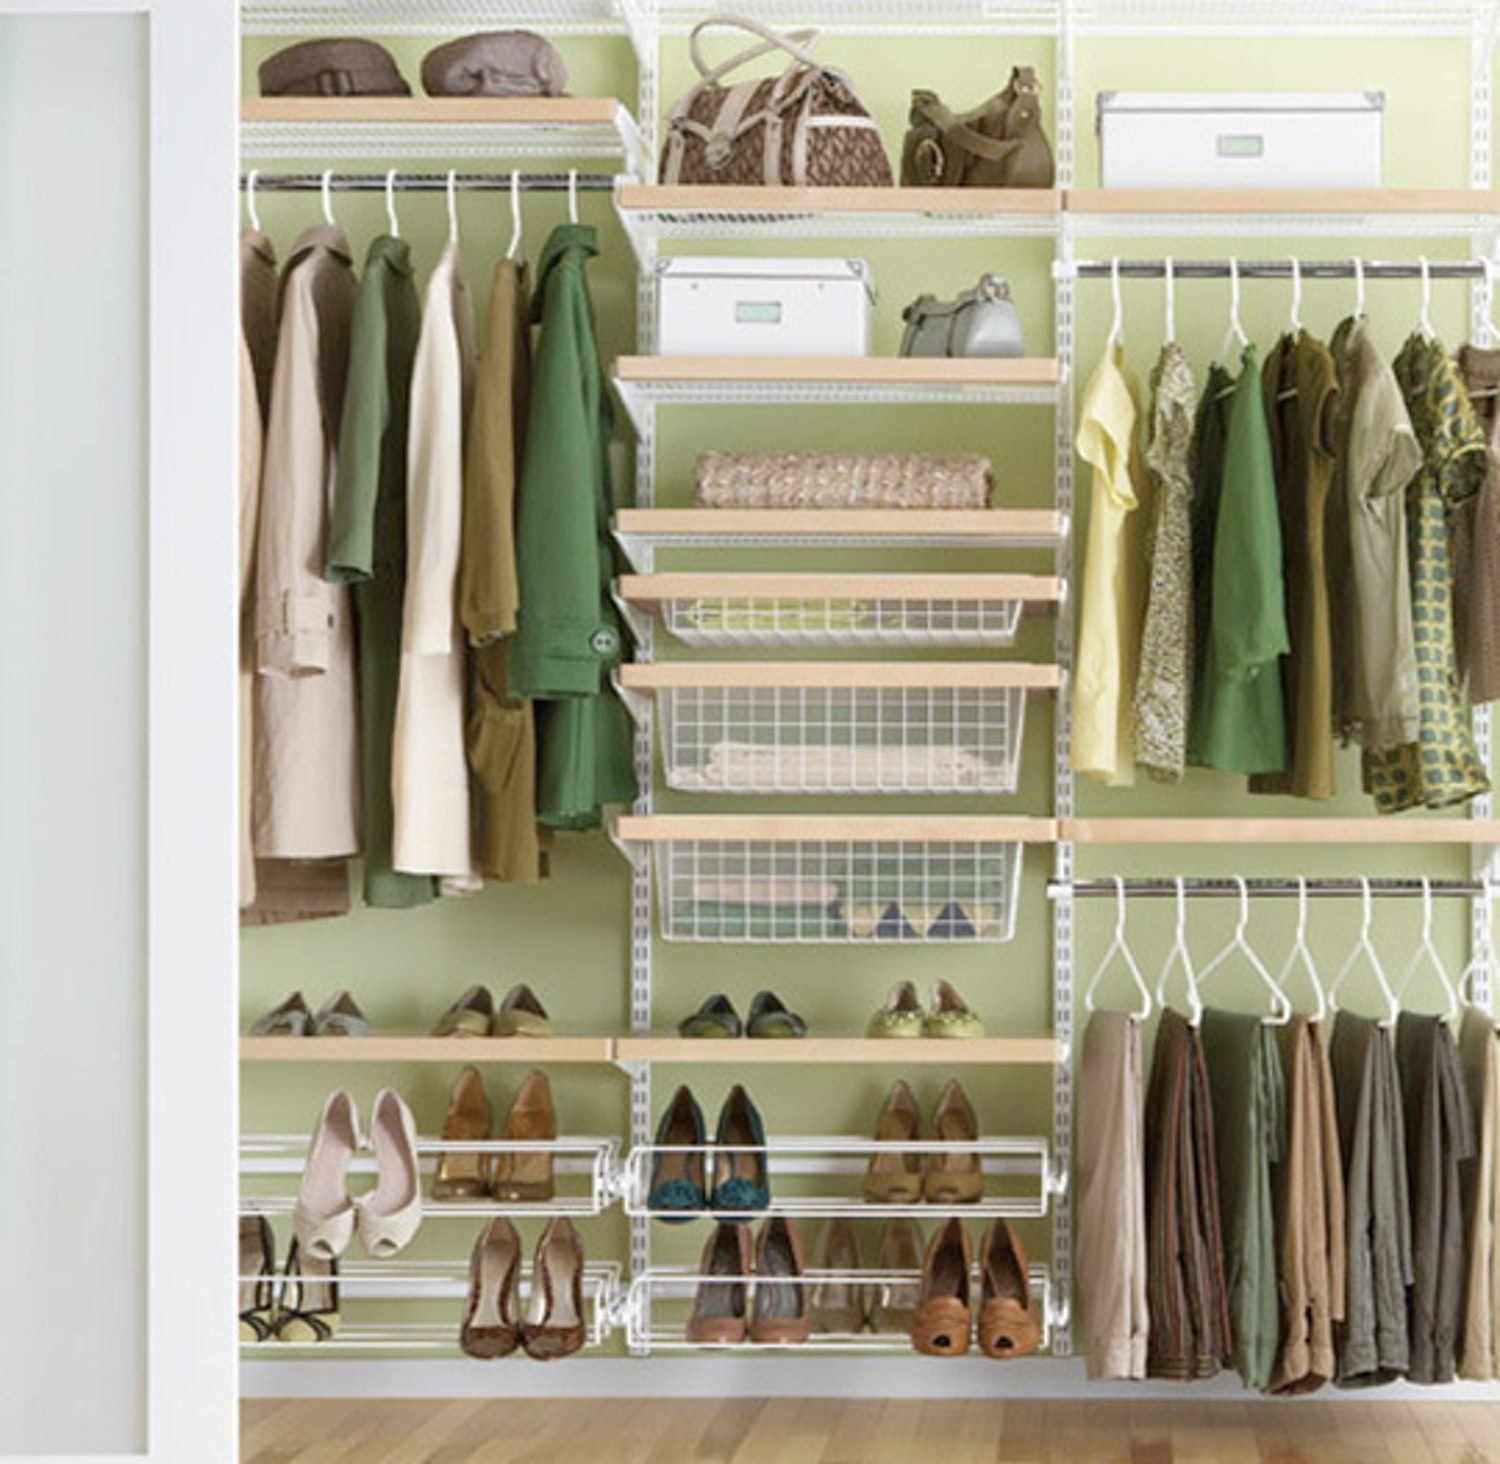 Best Closet Systems The Best Closet Systems Recipes To Cook Closet Organization